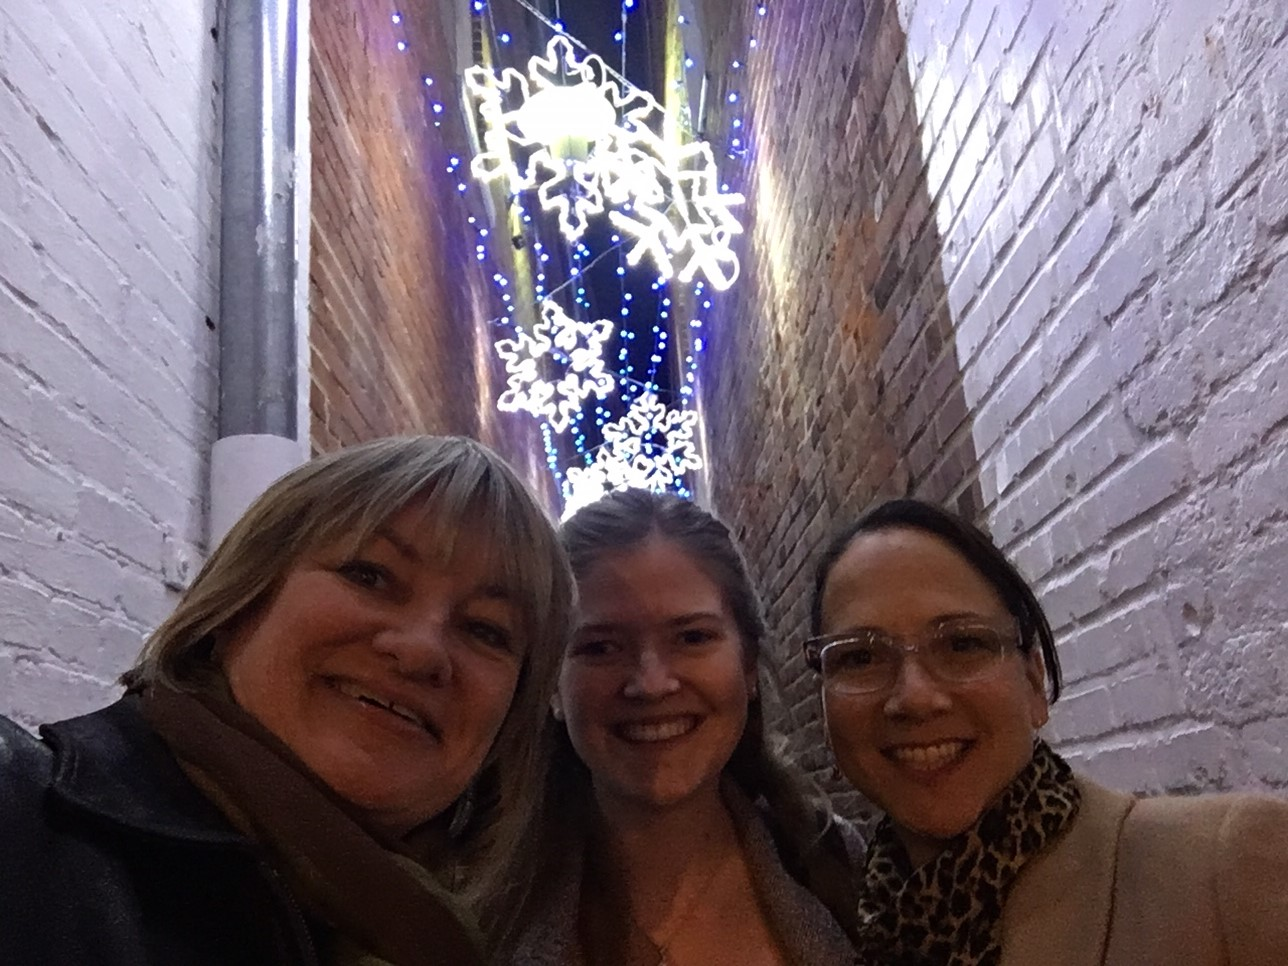 Selfies in Snowflake Alley in downtown Annapolis have become part of the Midnight Madness tradition. Photo courtesy of Maureen Peterson